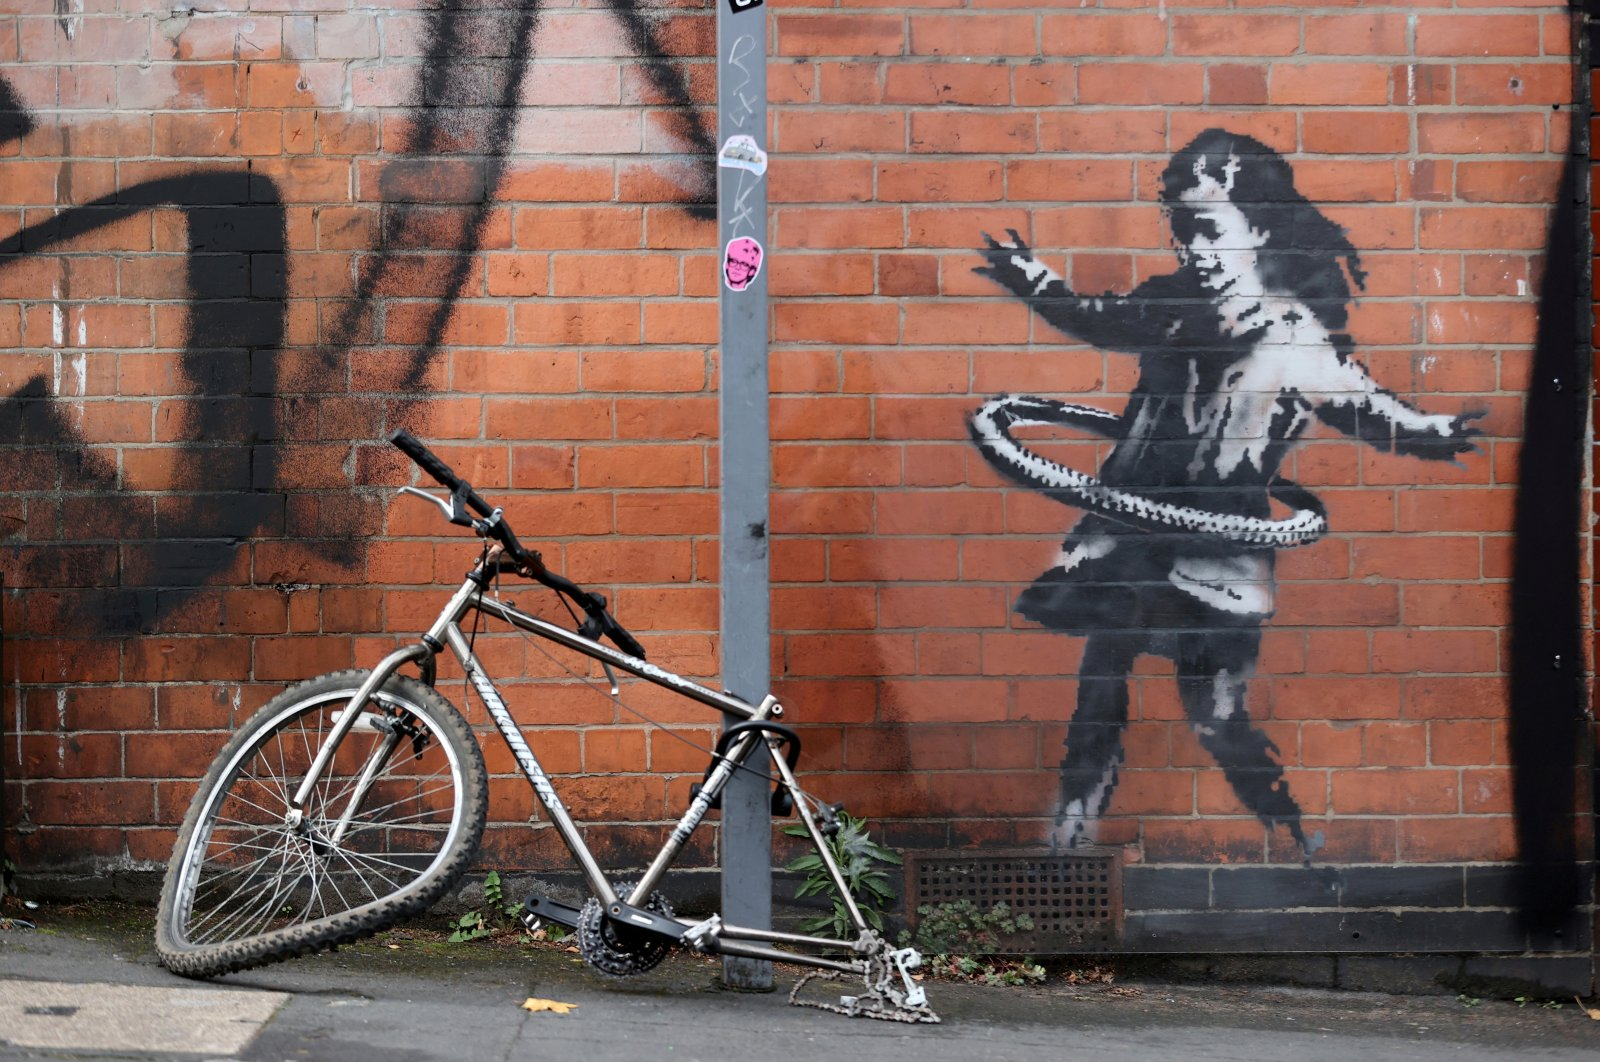 A new Banksy artwork is seen in Rothesay Avenue, Nottingham, Britain on Oct. 17, 2020. (Reuters Photo)